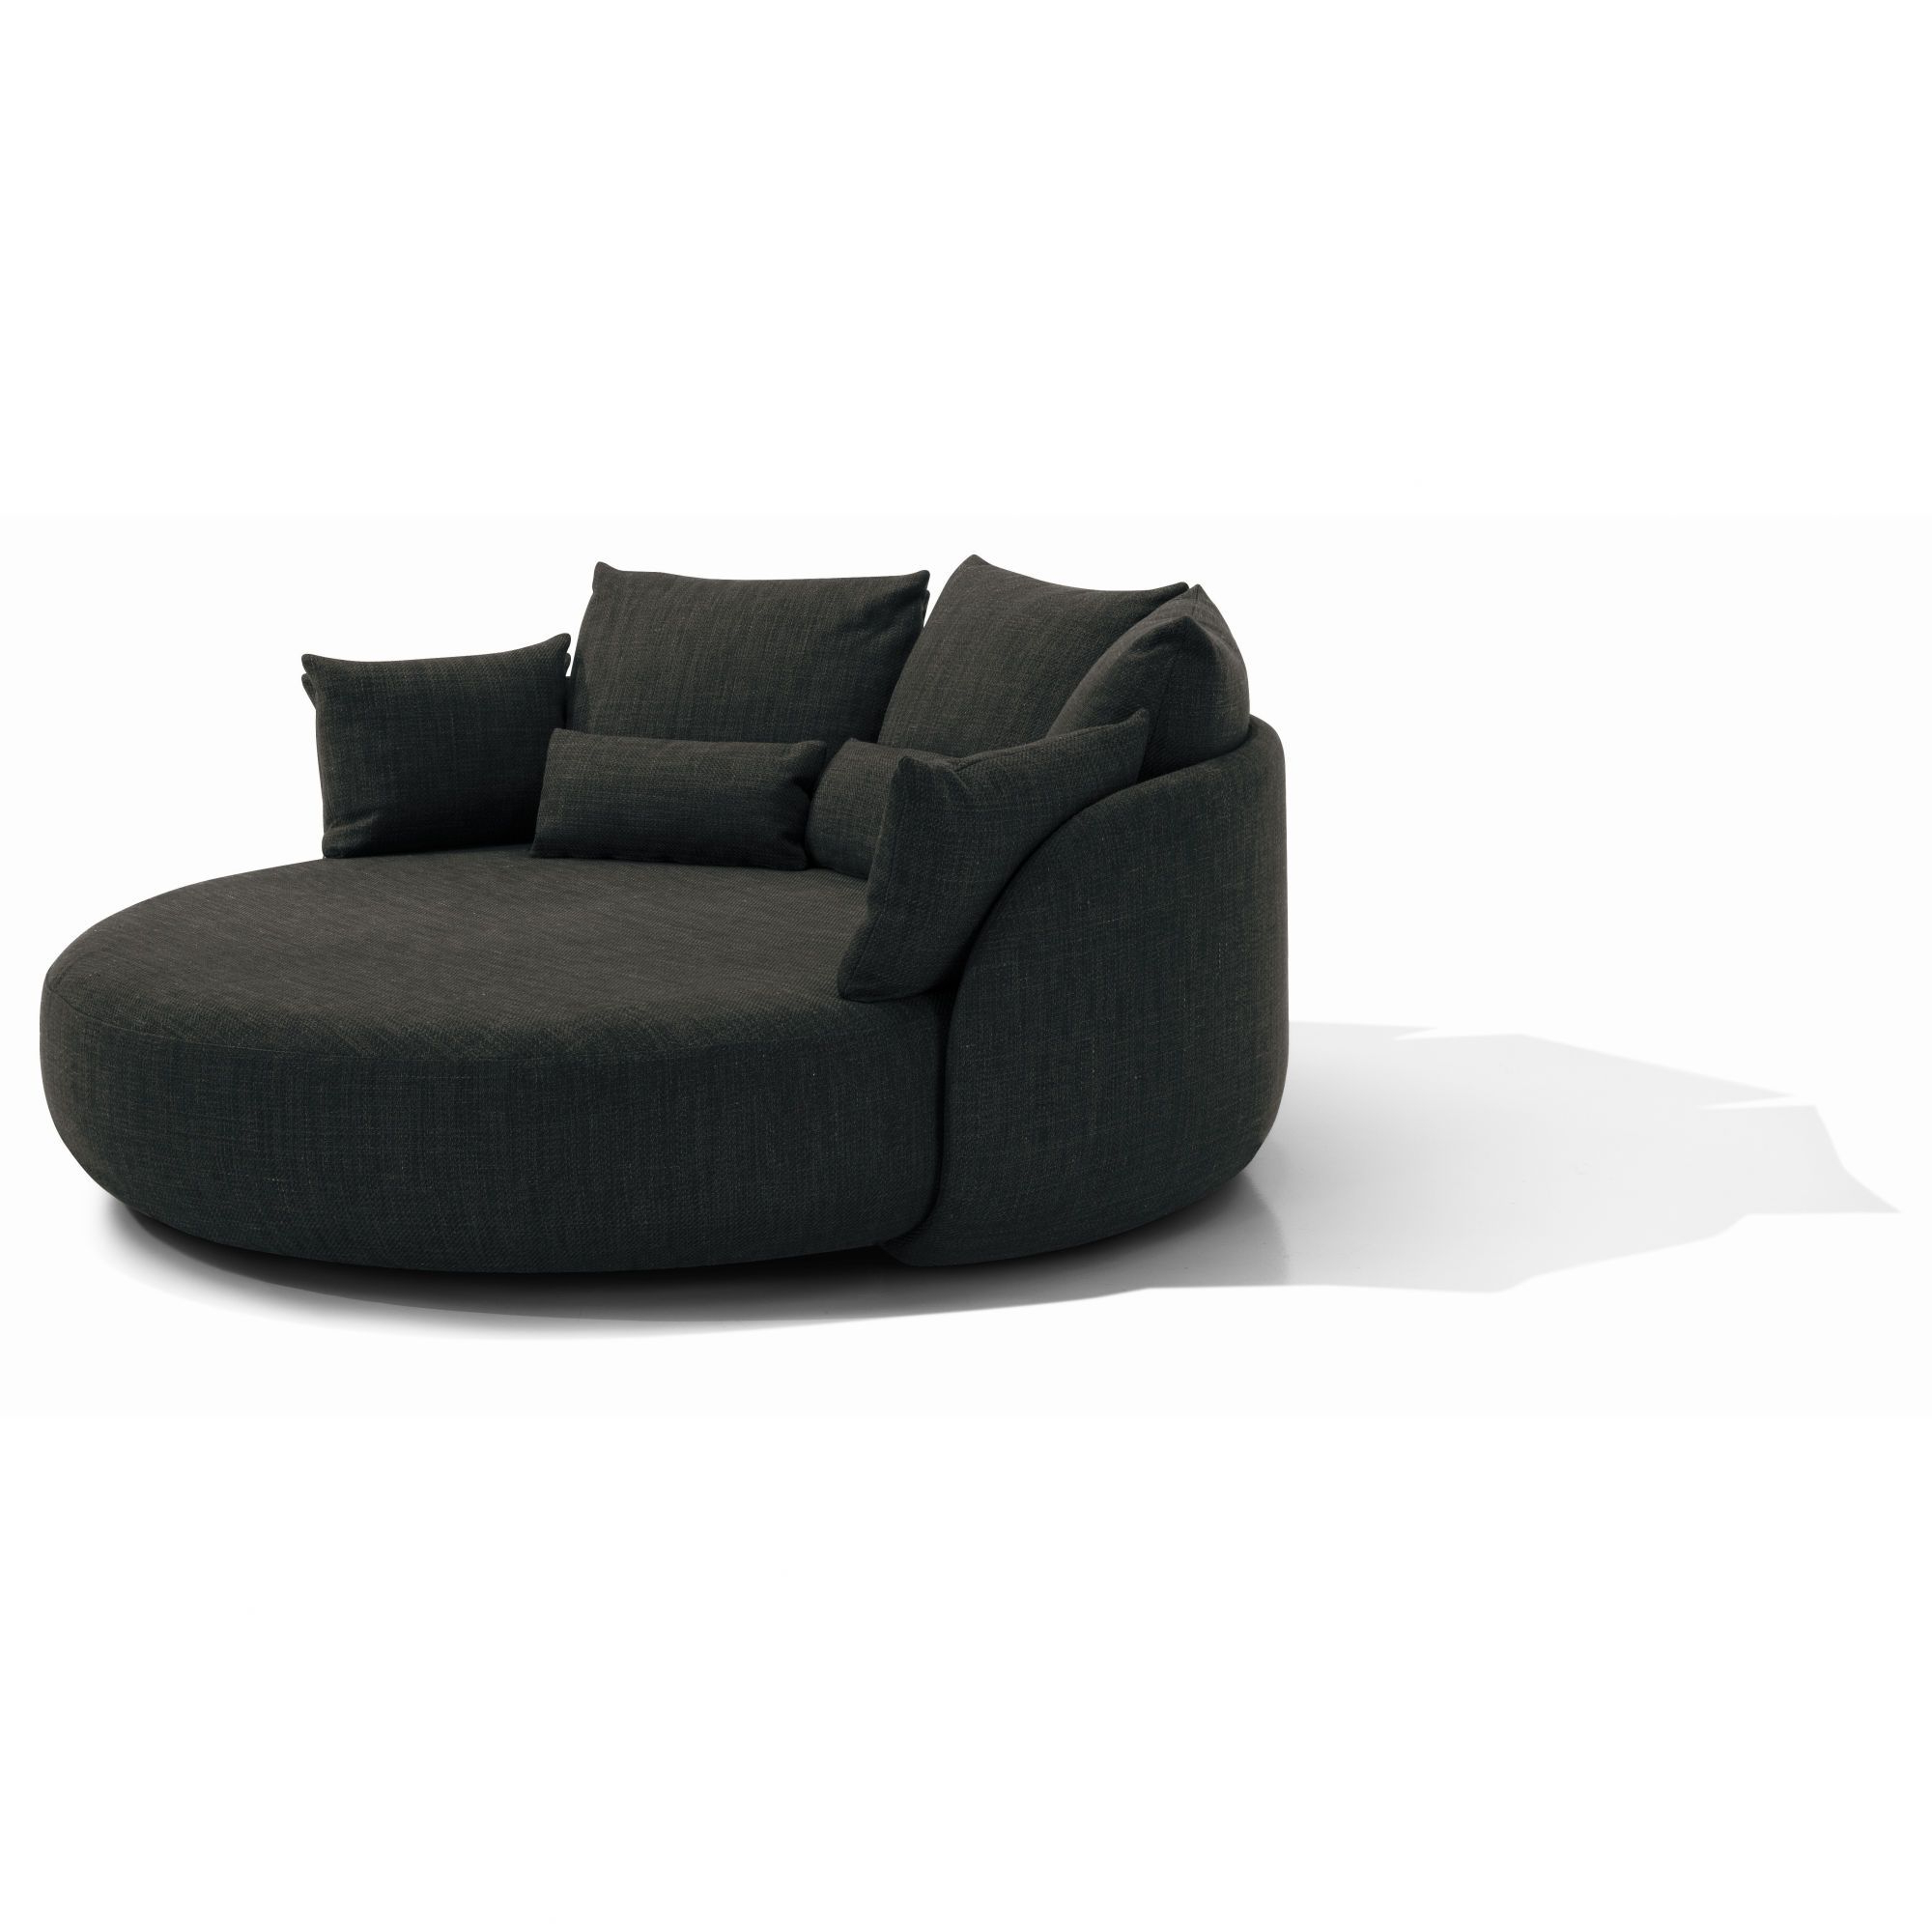 "Widely Used Totally Impractical Sofa For Our Small Space At 81"" Round – Is It Regarding Circle Sofa Chairs (View 4 of 20)"